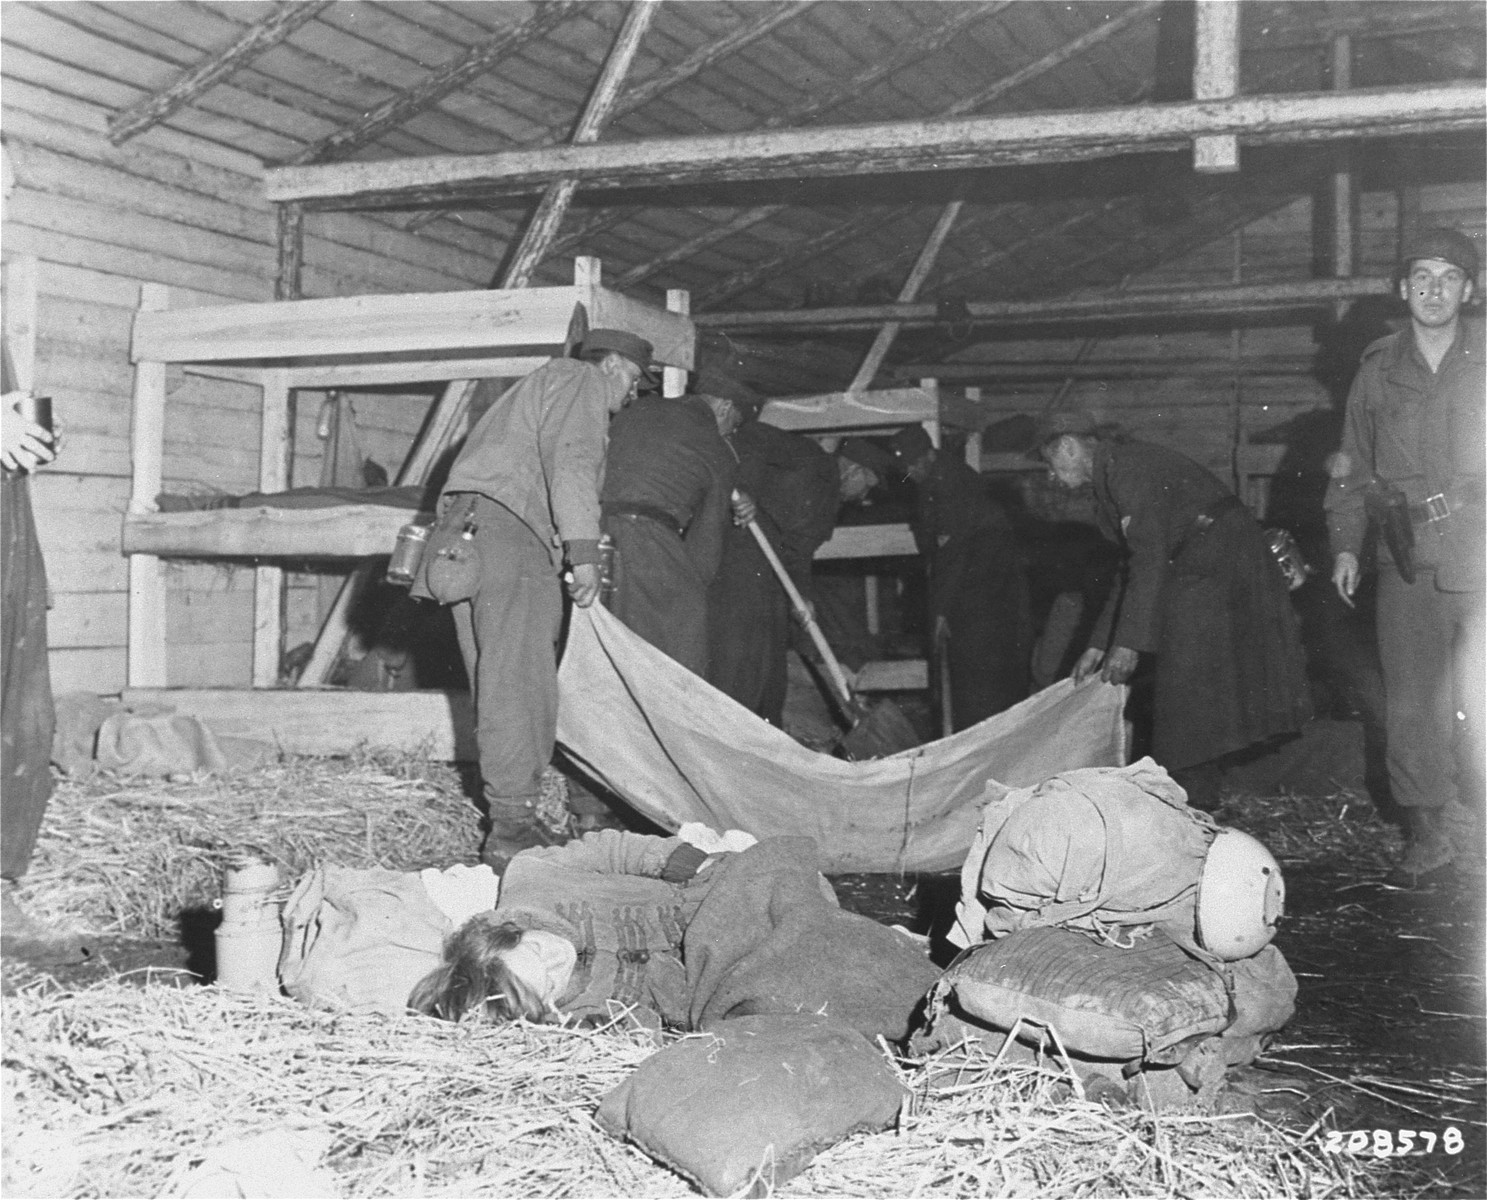 Medical corpsmen of the U.S. 71st Infantry Division, 3rd U.S. Army look on as captured German soldiers remove bodies from inside a barracks in Gunskirchen.  In the foreground, a Jewish girl lies huddled in the straw on the floor of the barracks.